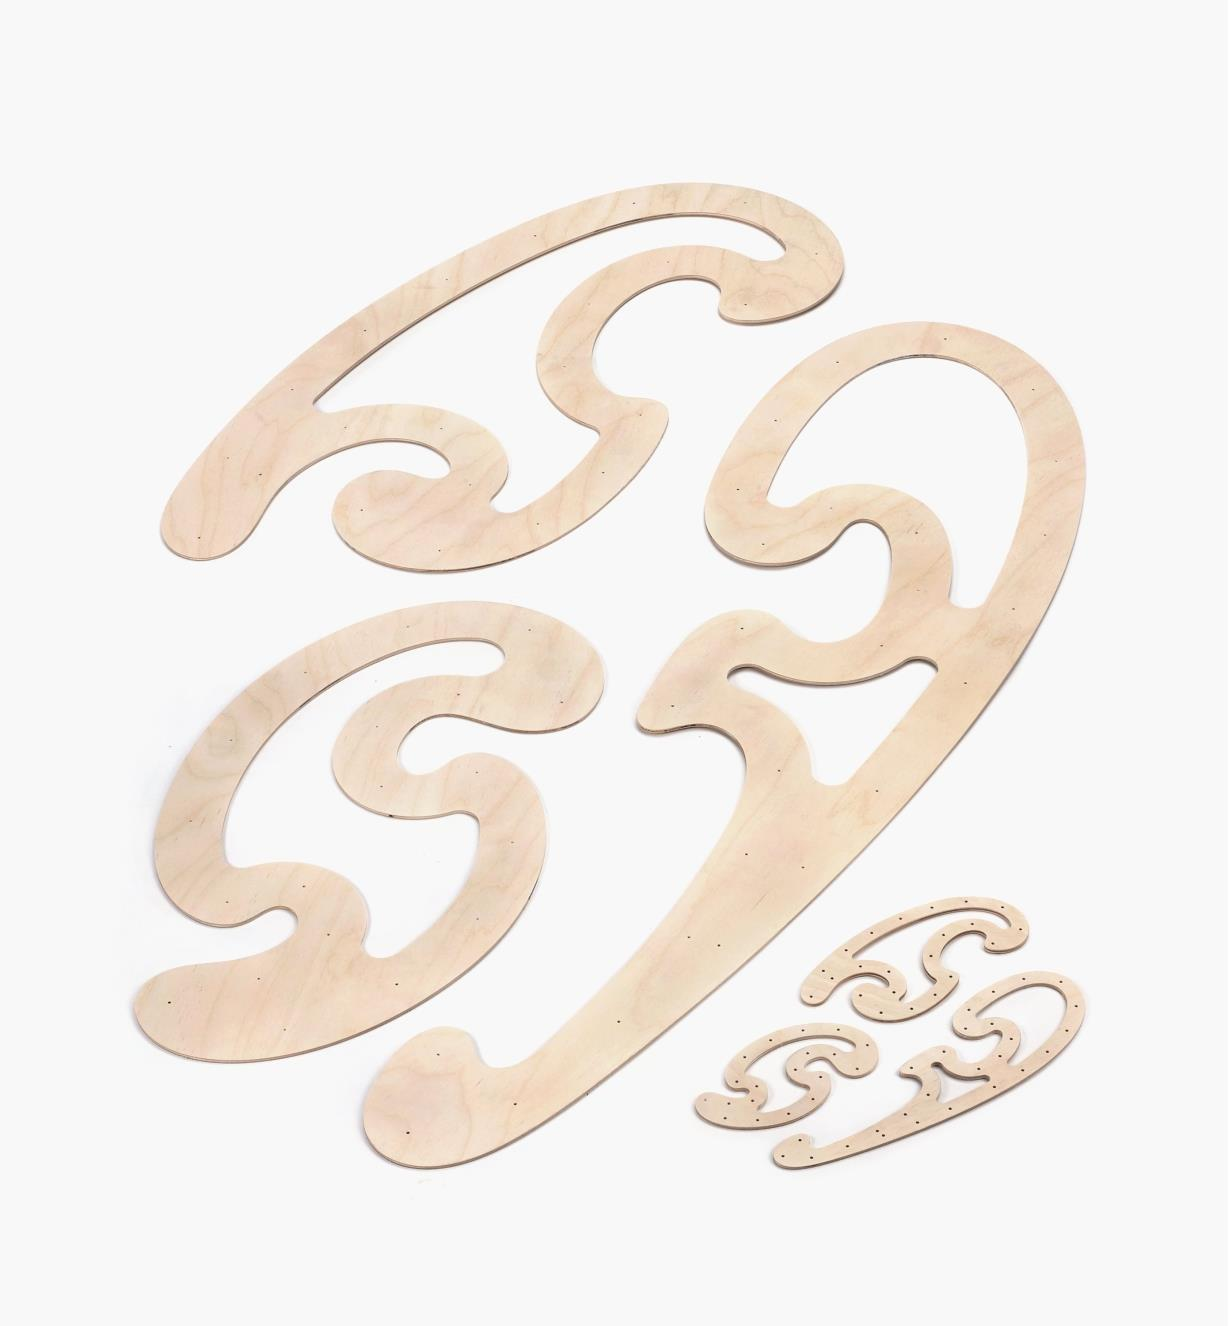 05N7805 - Set of 6 French Curves